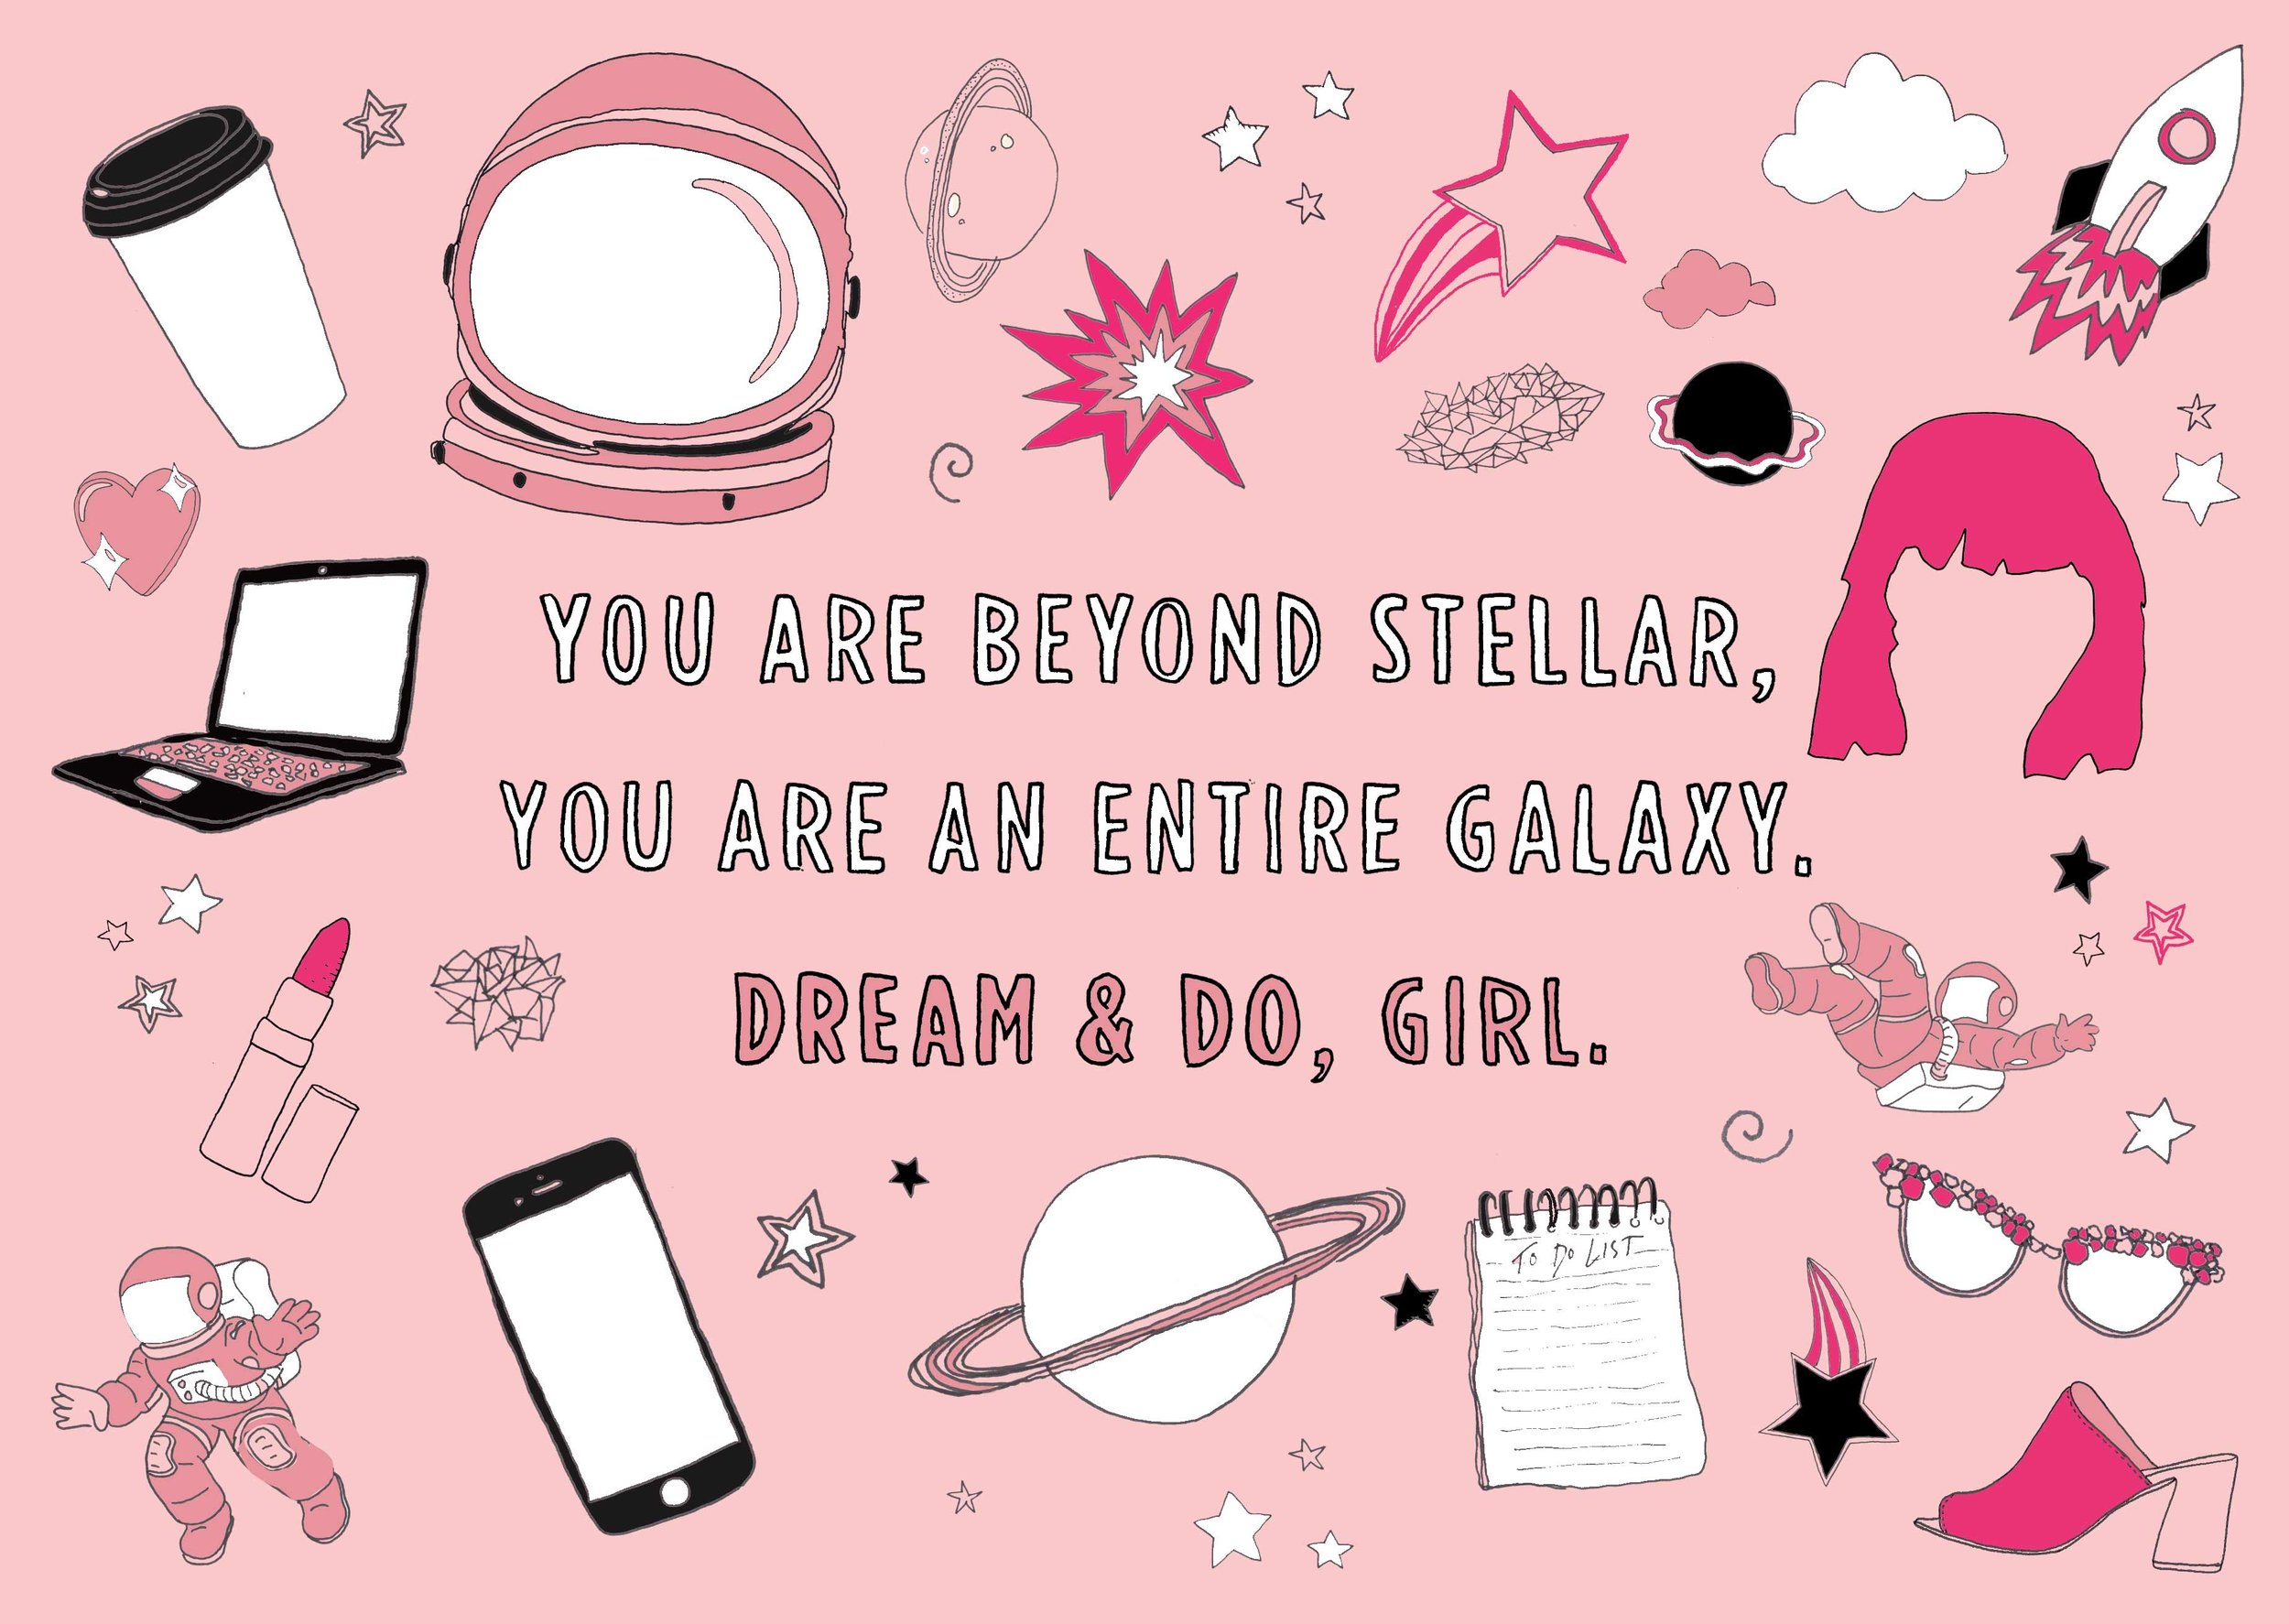 WE'RE INVITING YOU TO PARTNER WITH US, TO GET THE RIGHT EYEBALLS ON YOUR BRAND - and most importantly, make someone's #GIRLBOSSDREAM become a reality